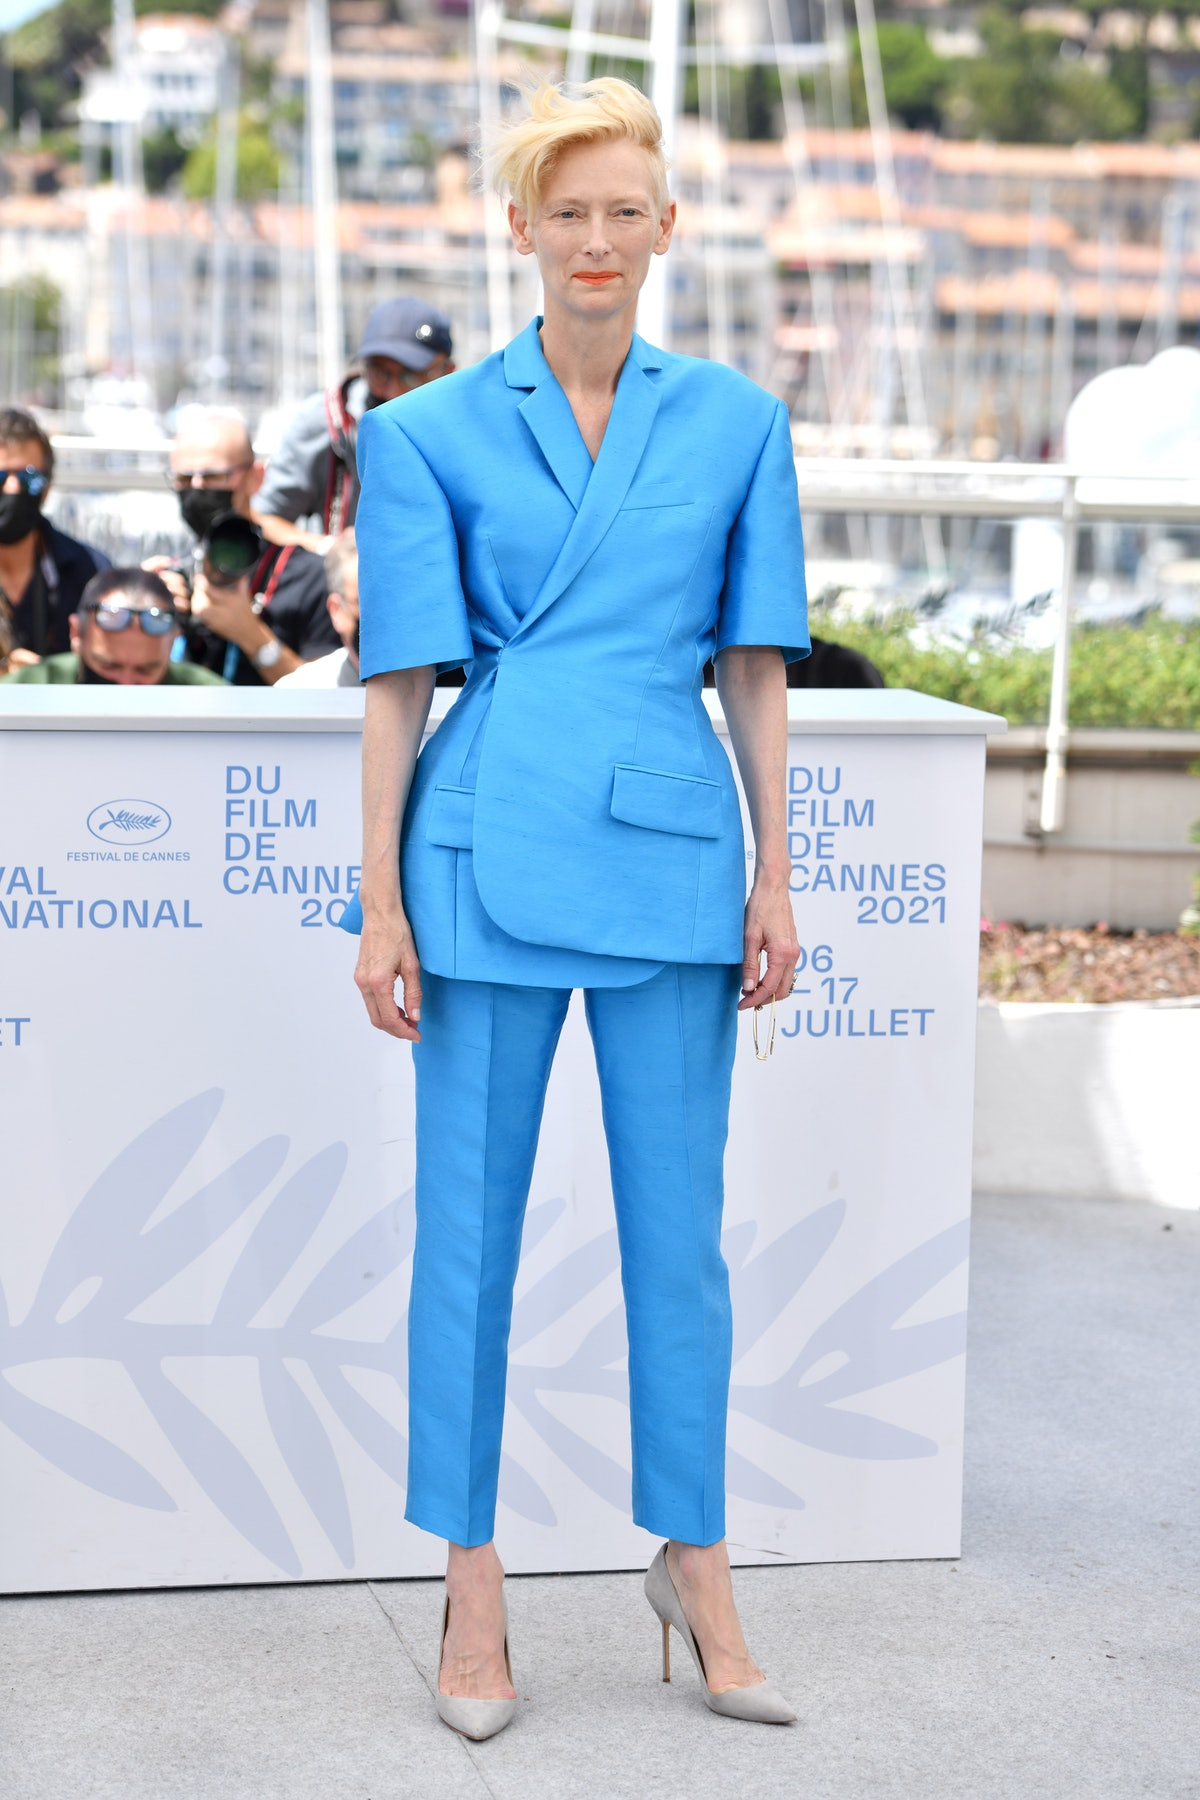 """CANNES, FRANCE - JULY 13: Tilda Swinton attends the """"The French Dispatch"""" photocall during the 74th annual Cannes Film Festival on July 13, 2021 in Cannes, France. (Photo by Lionel Hahn/Getty Images)"""